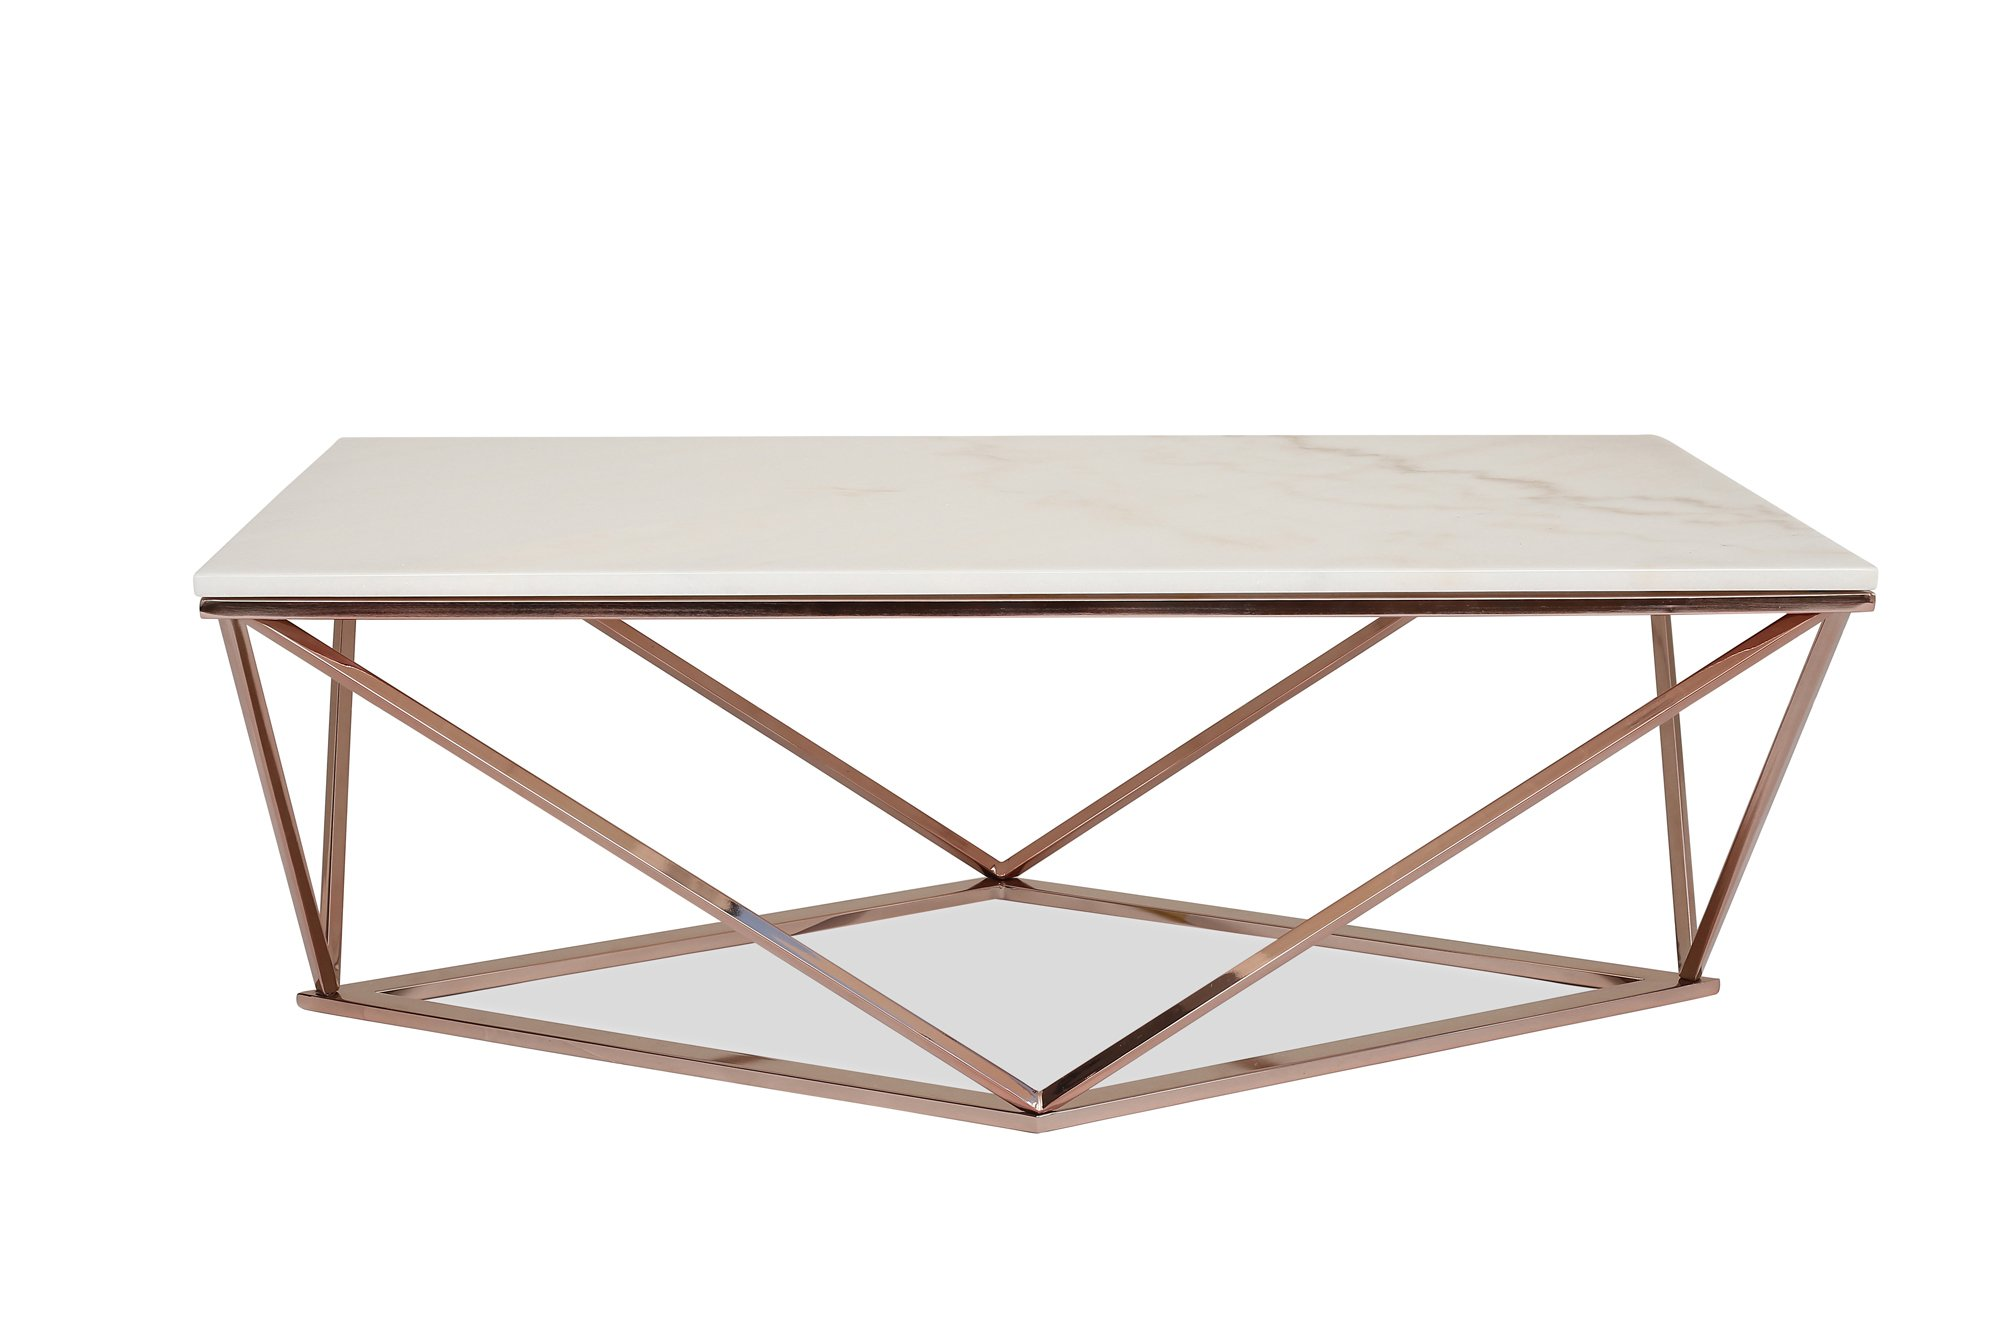 STELLA White Marble Coffee Table - Modern Gold Coffee Tables for Living Room - Rose Gold